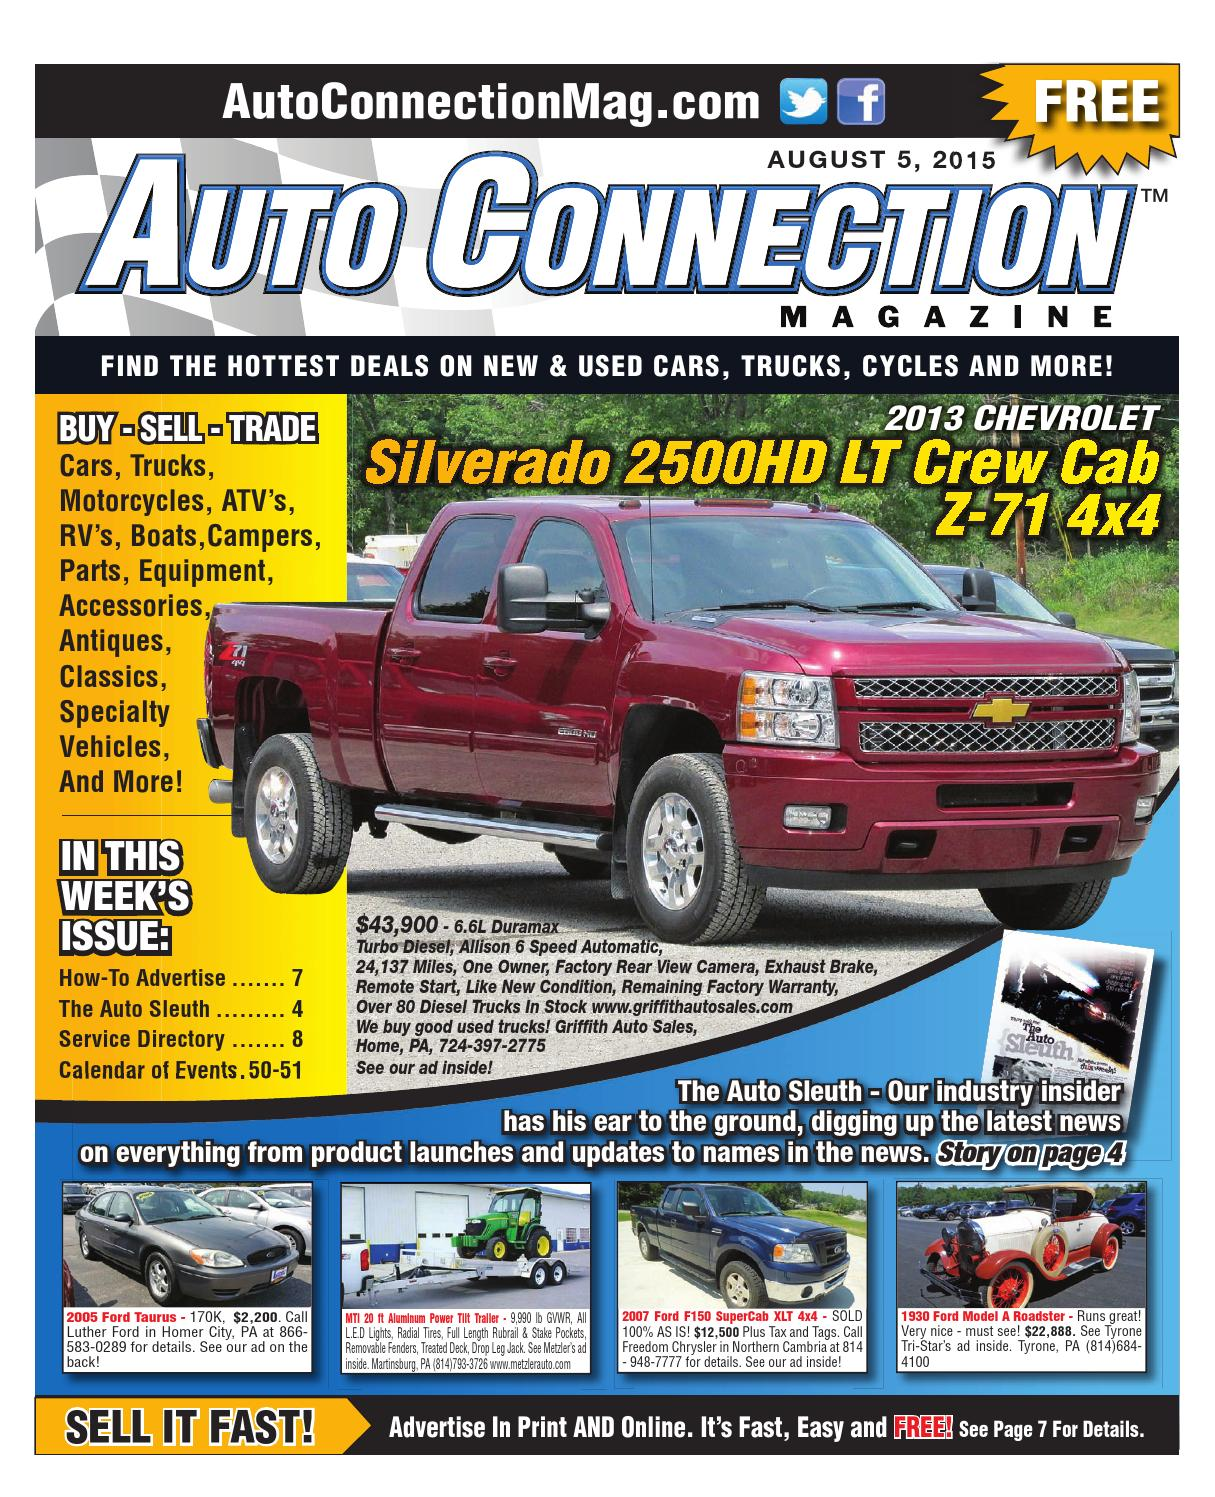 08 05 15 Auto Connection Magazine By Issuu Gm Duramax Sel Engine